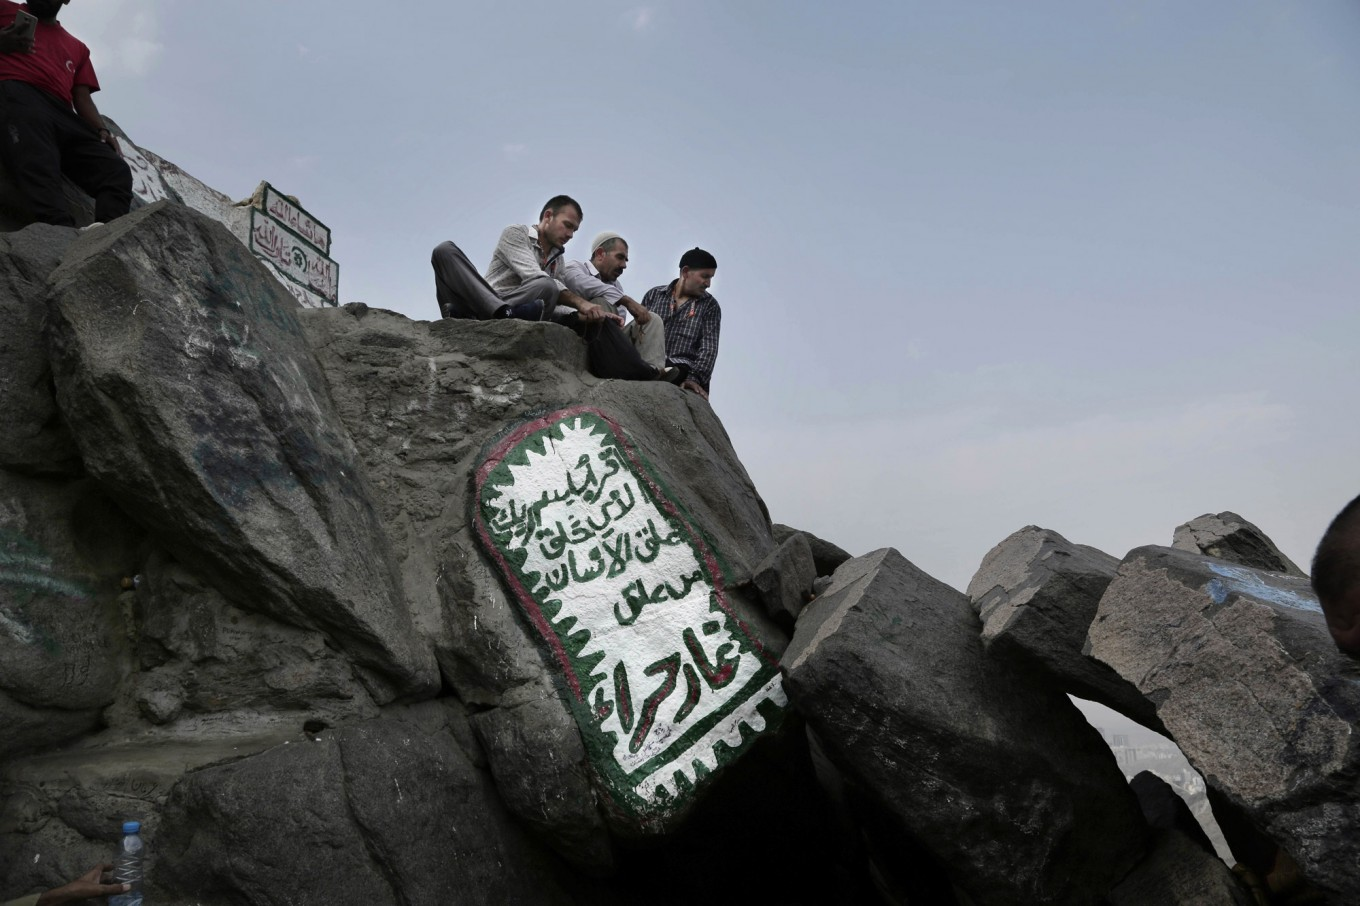 Turkish men visit Hiraa cave on Noor Mountain, where Prophet Muhammad received his first revelation from God to preach Islam, on the outskirts of Mecca, Saudi Arabia, Friday, Sept. 9, 2016. Muslim pilgrims have begun arriving at the holiest sites in Islam ahead of the annual hajj pilgrimage in Saudi Arabia. AP Photo/Nariman El-Mofty